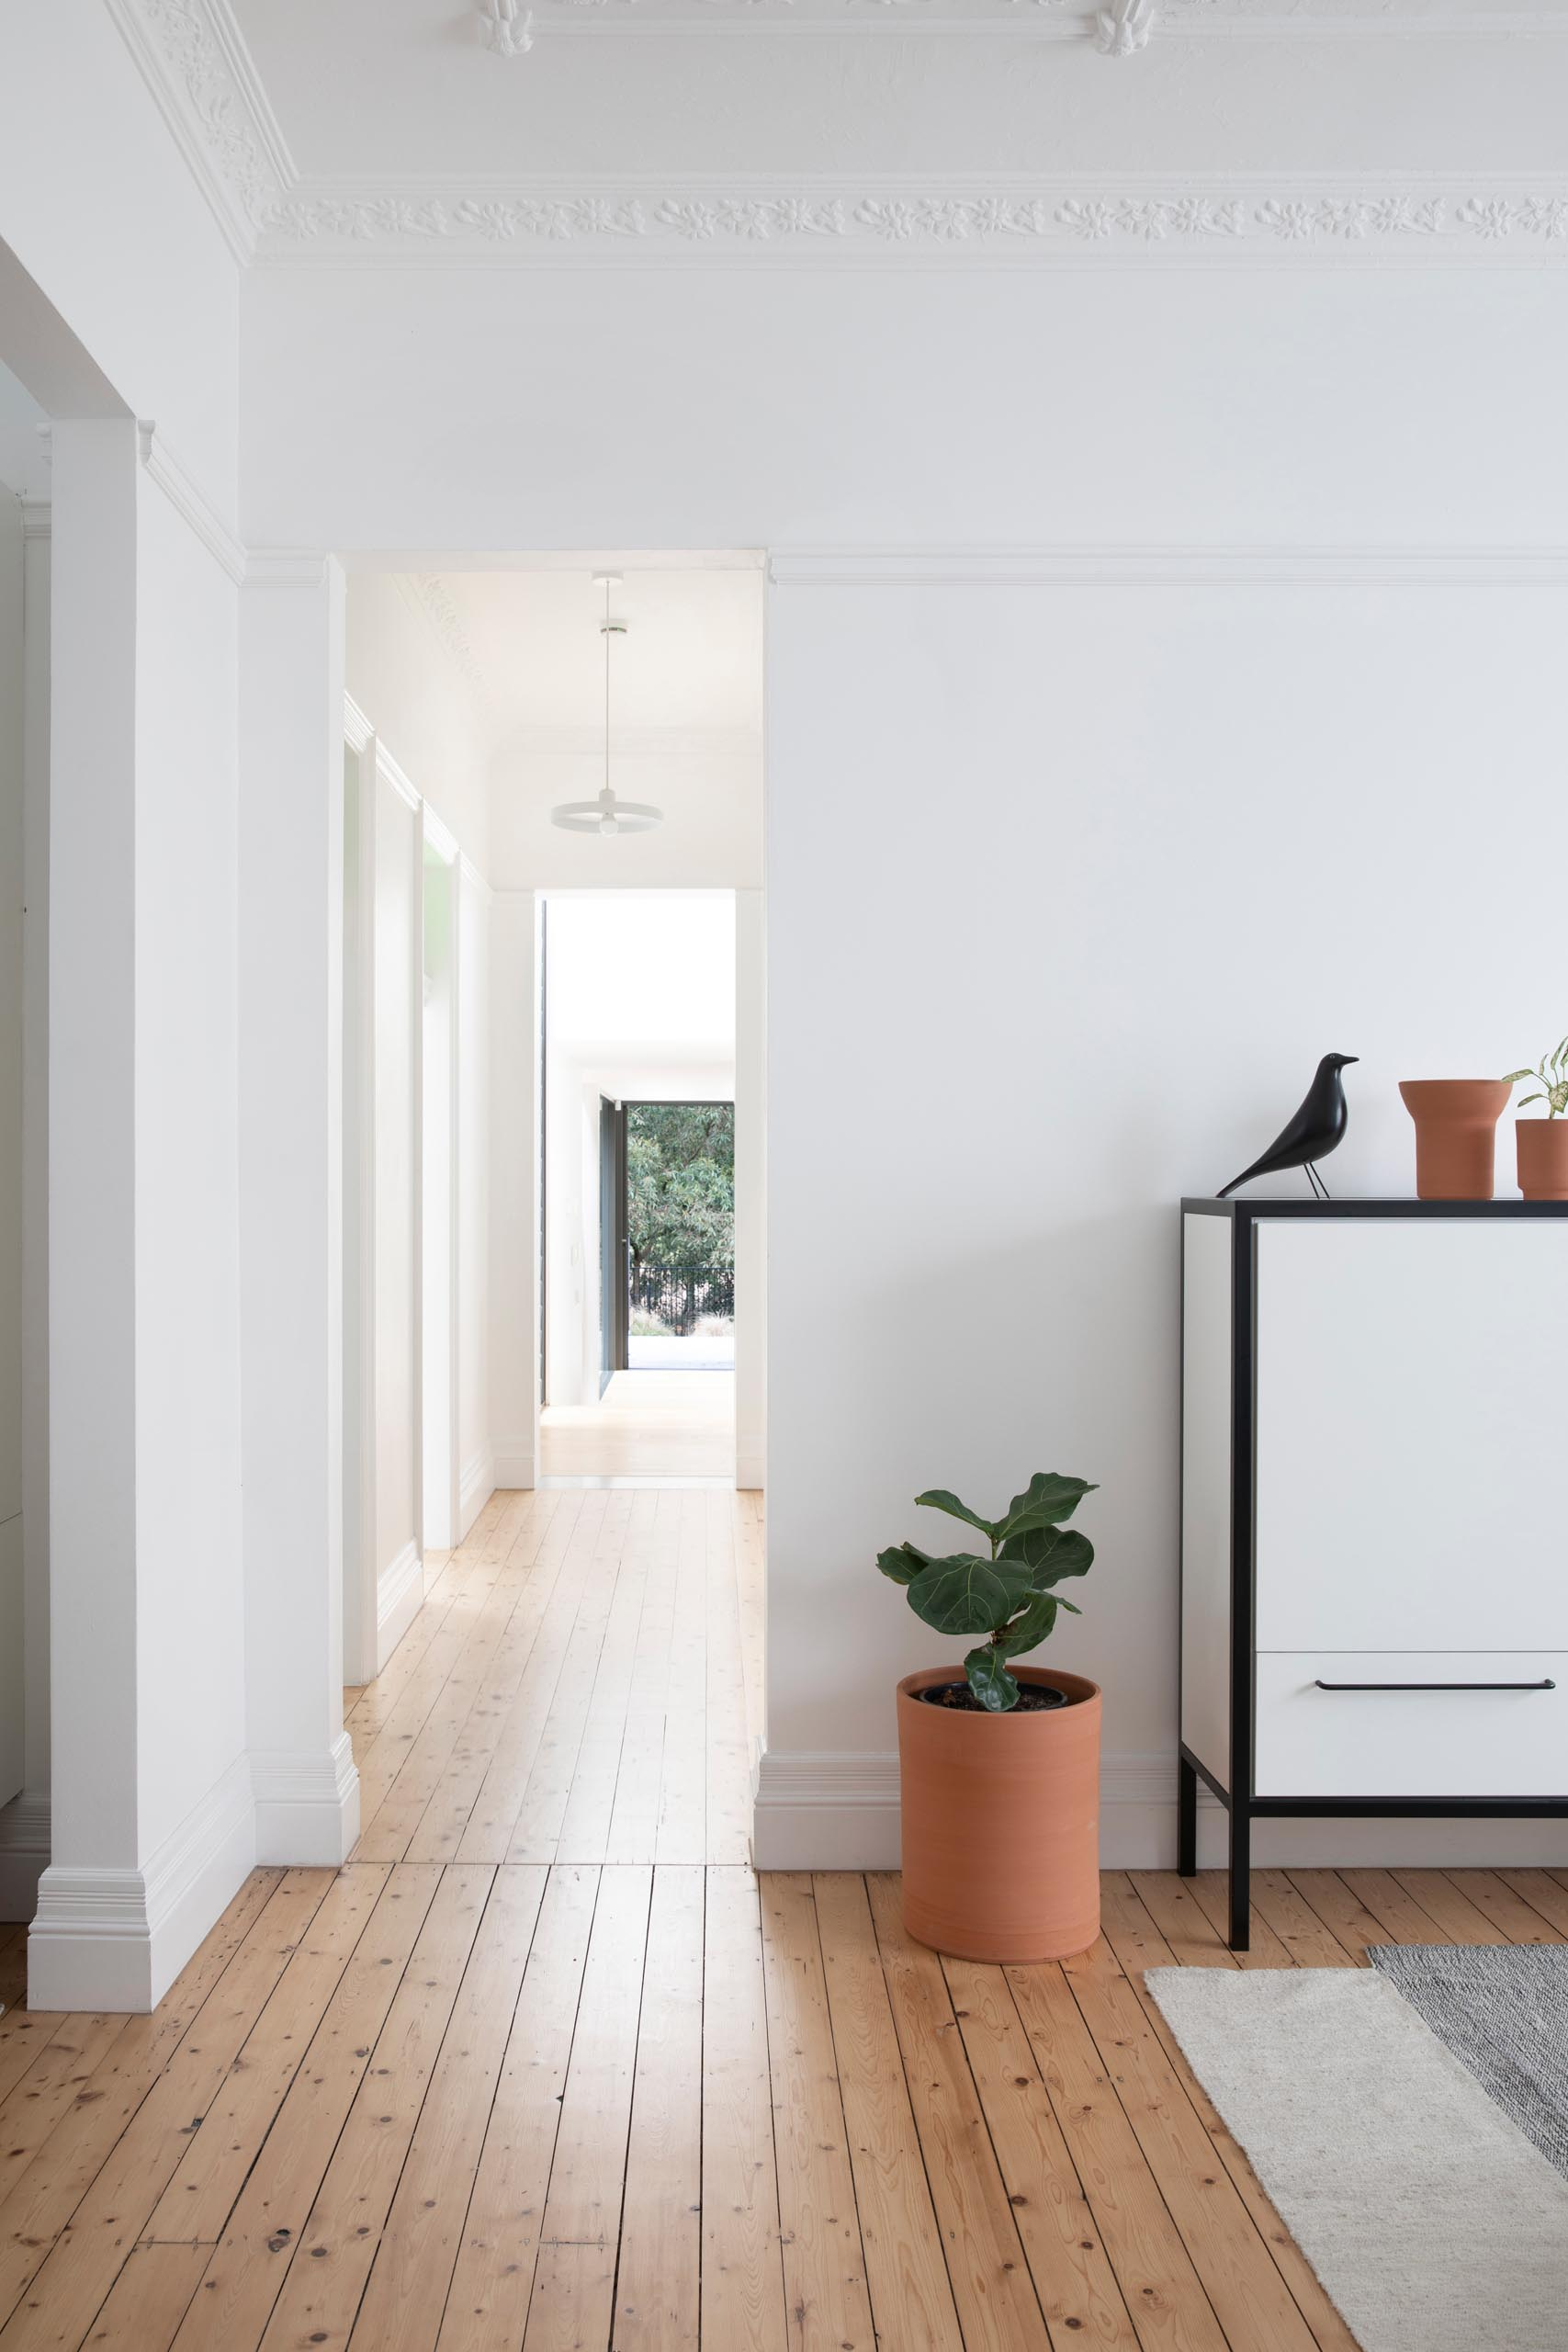 Wood floors can be found throughout the home, while white walls draw focus to era-defining hallmarks like ornate pressed-tin ceilings and cast-iron fireplaces, both of which can be seen in a casual living room.